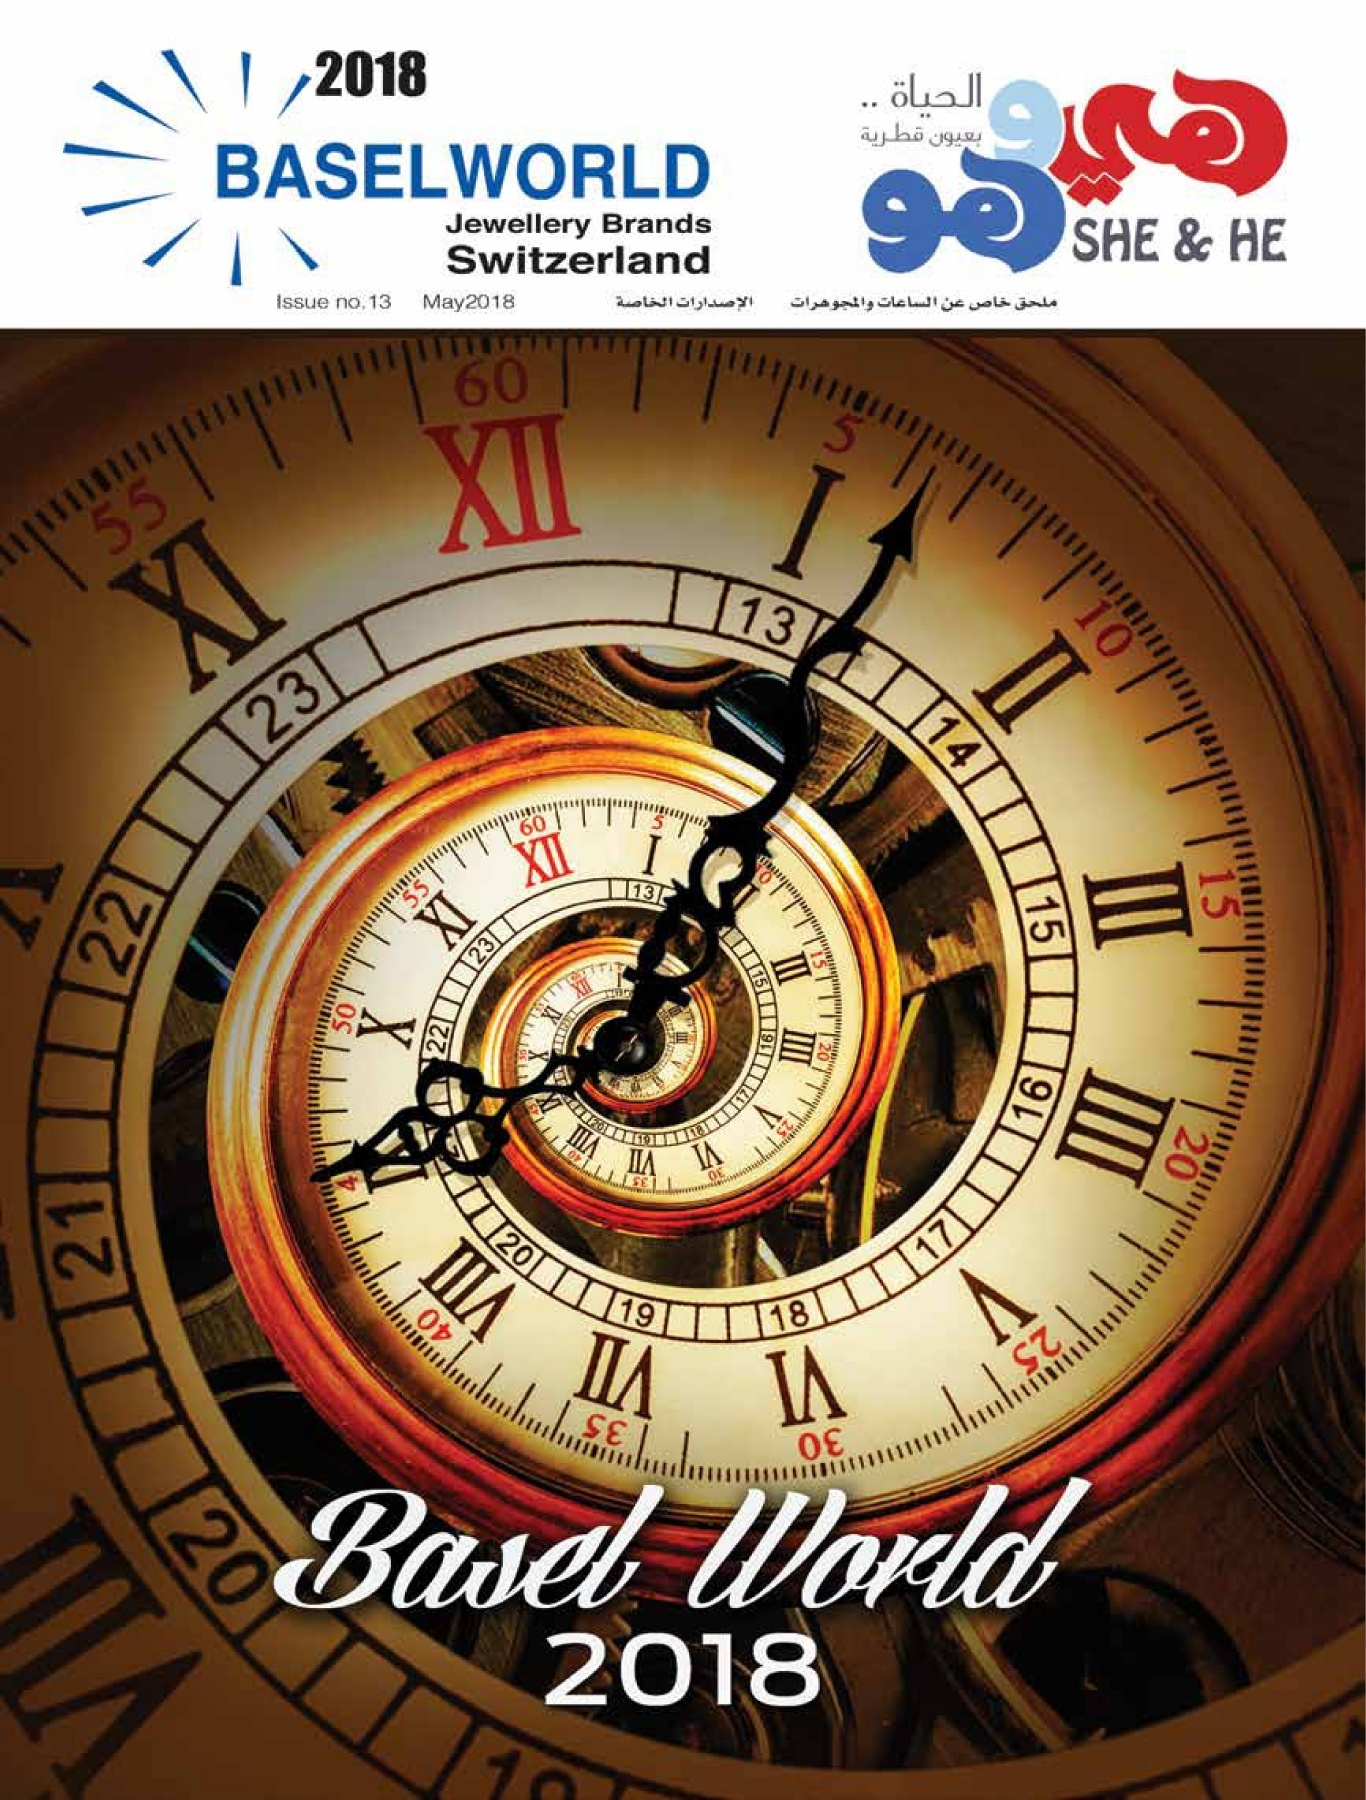 5067a0d86 BASEL WORLD 2018 Pages 51 - 100 - Text Version | AnyFlip